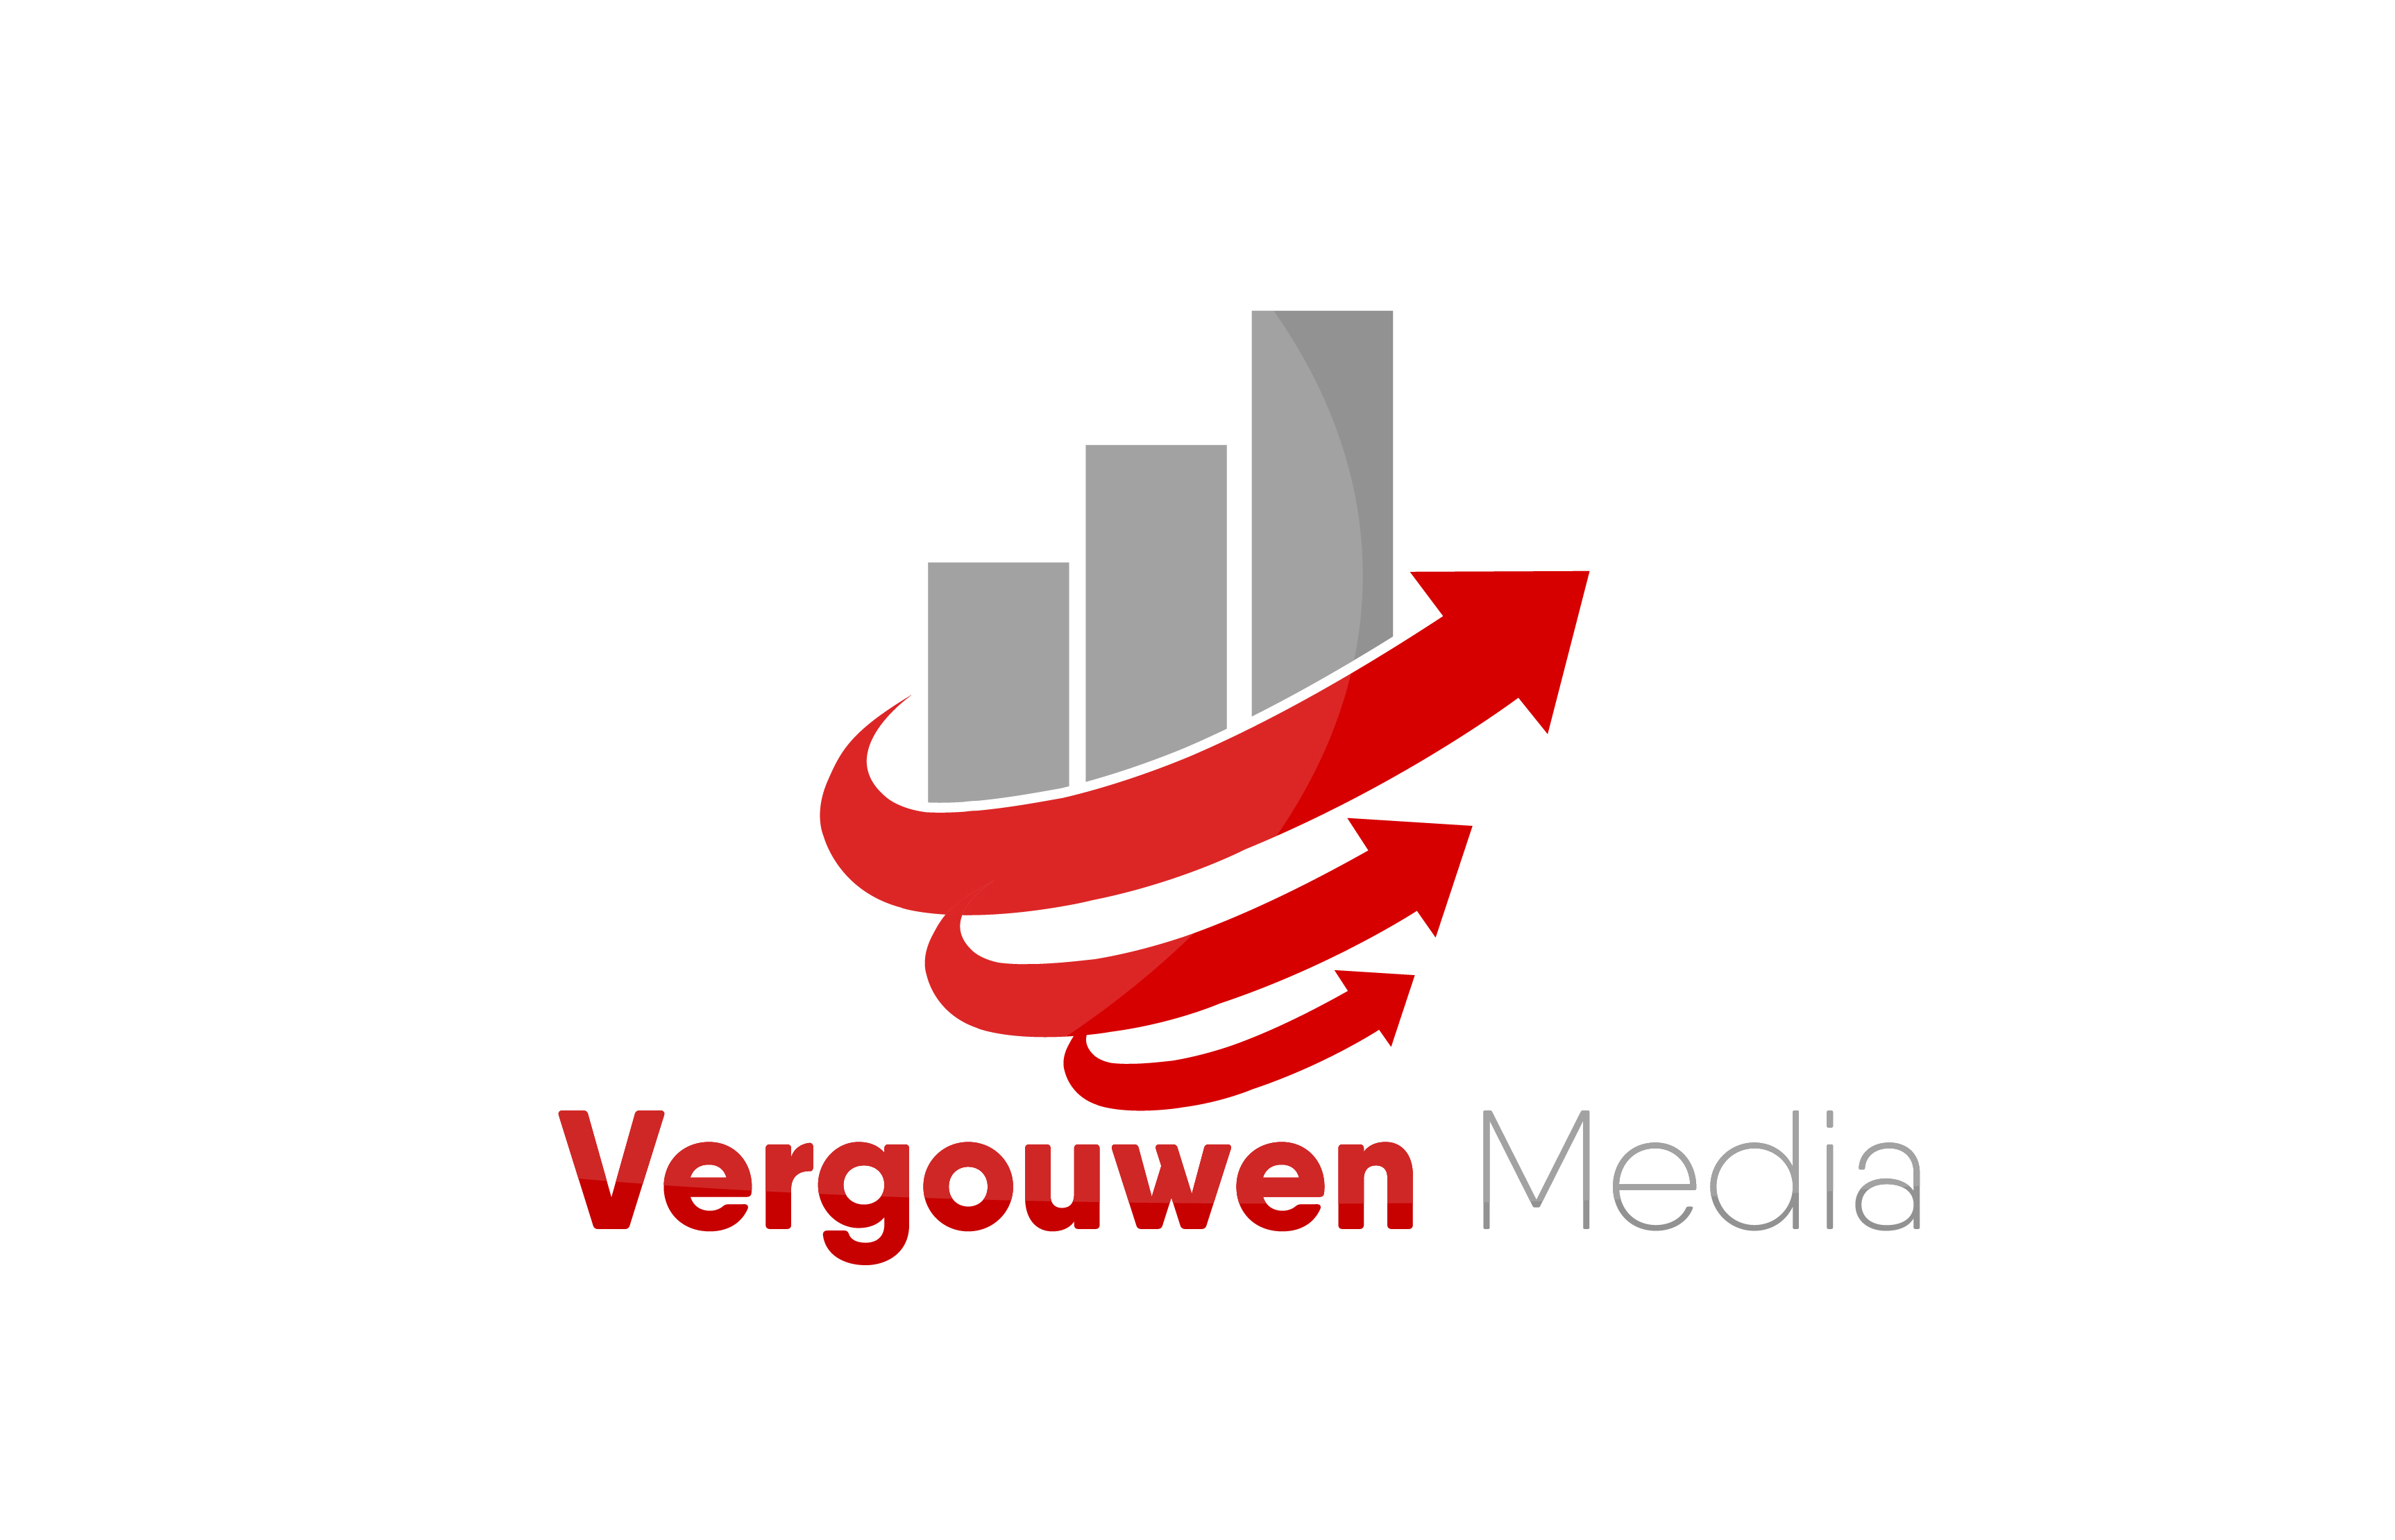 Vergouwen Media